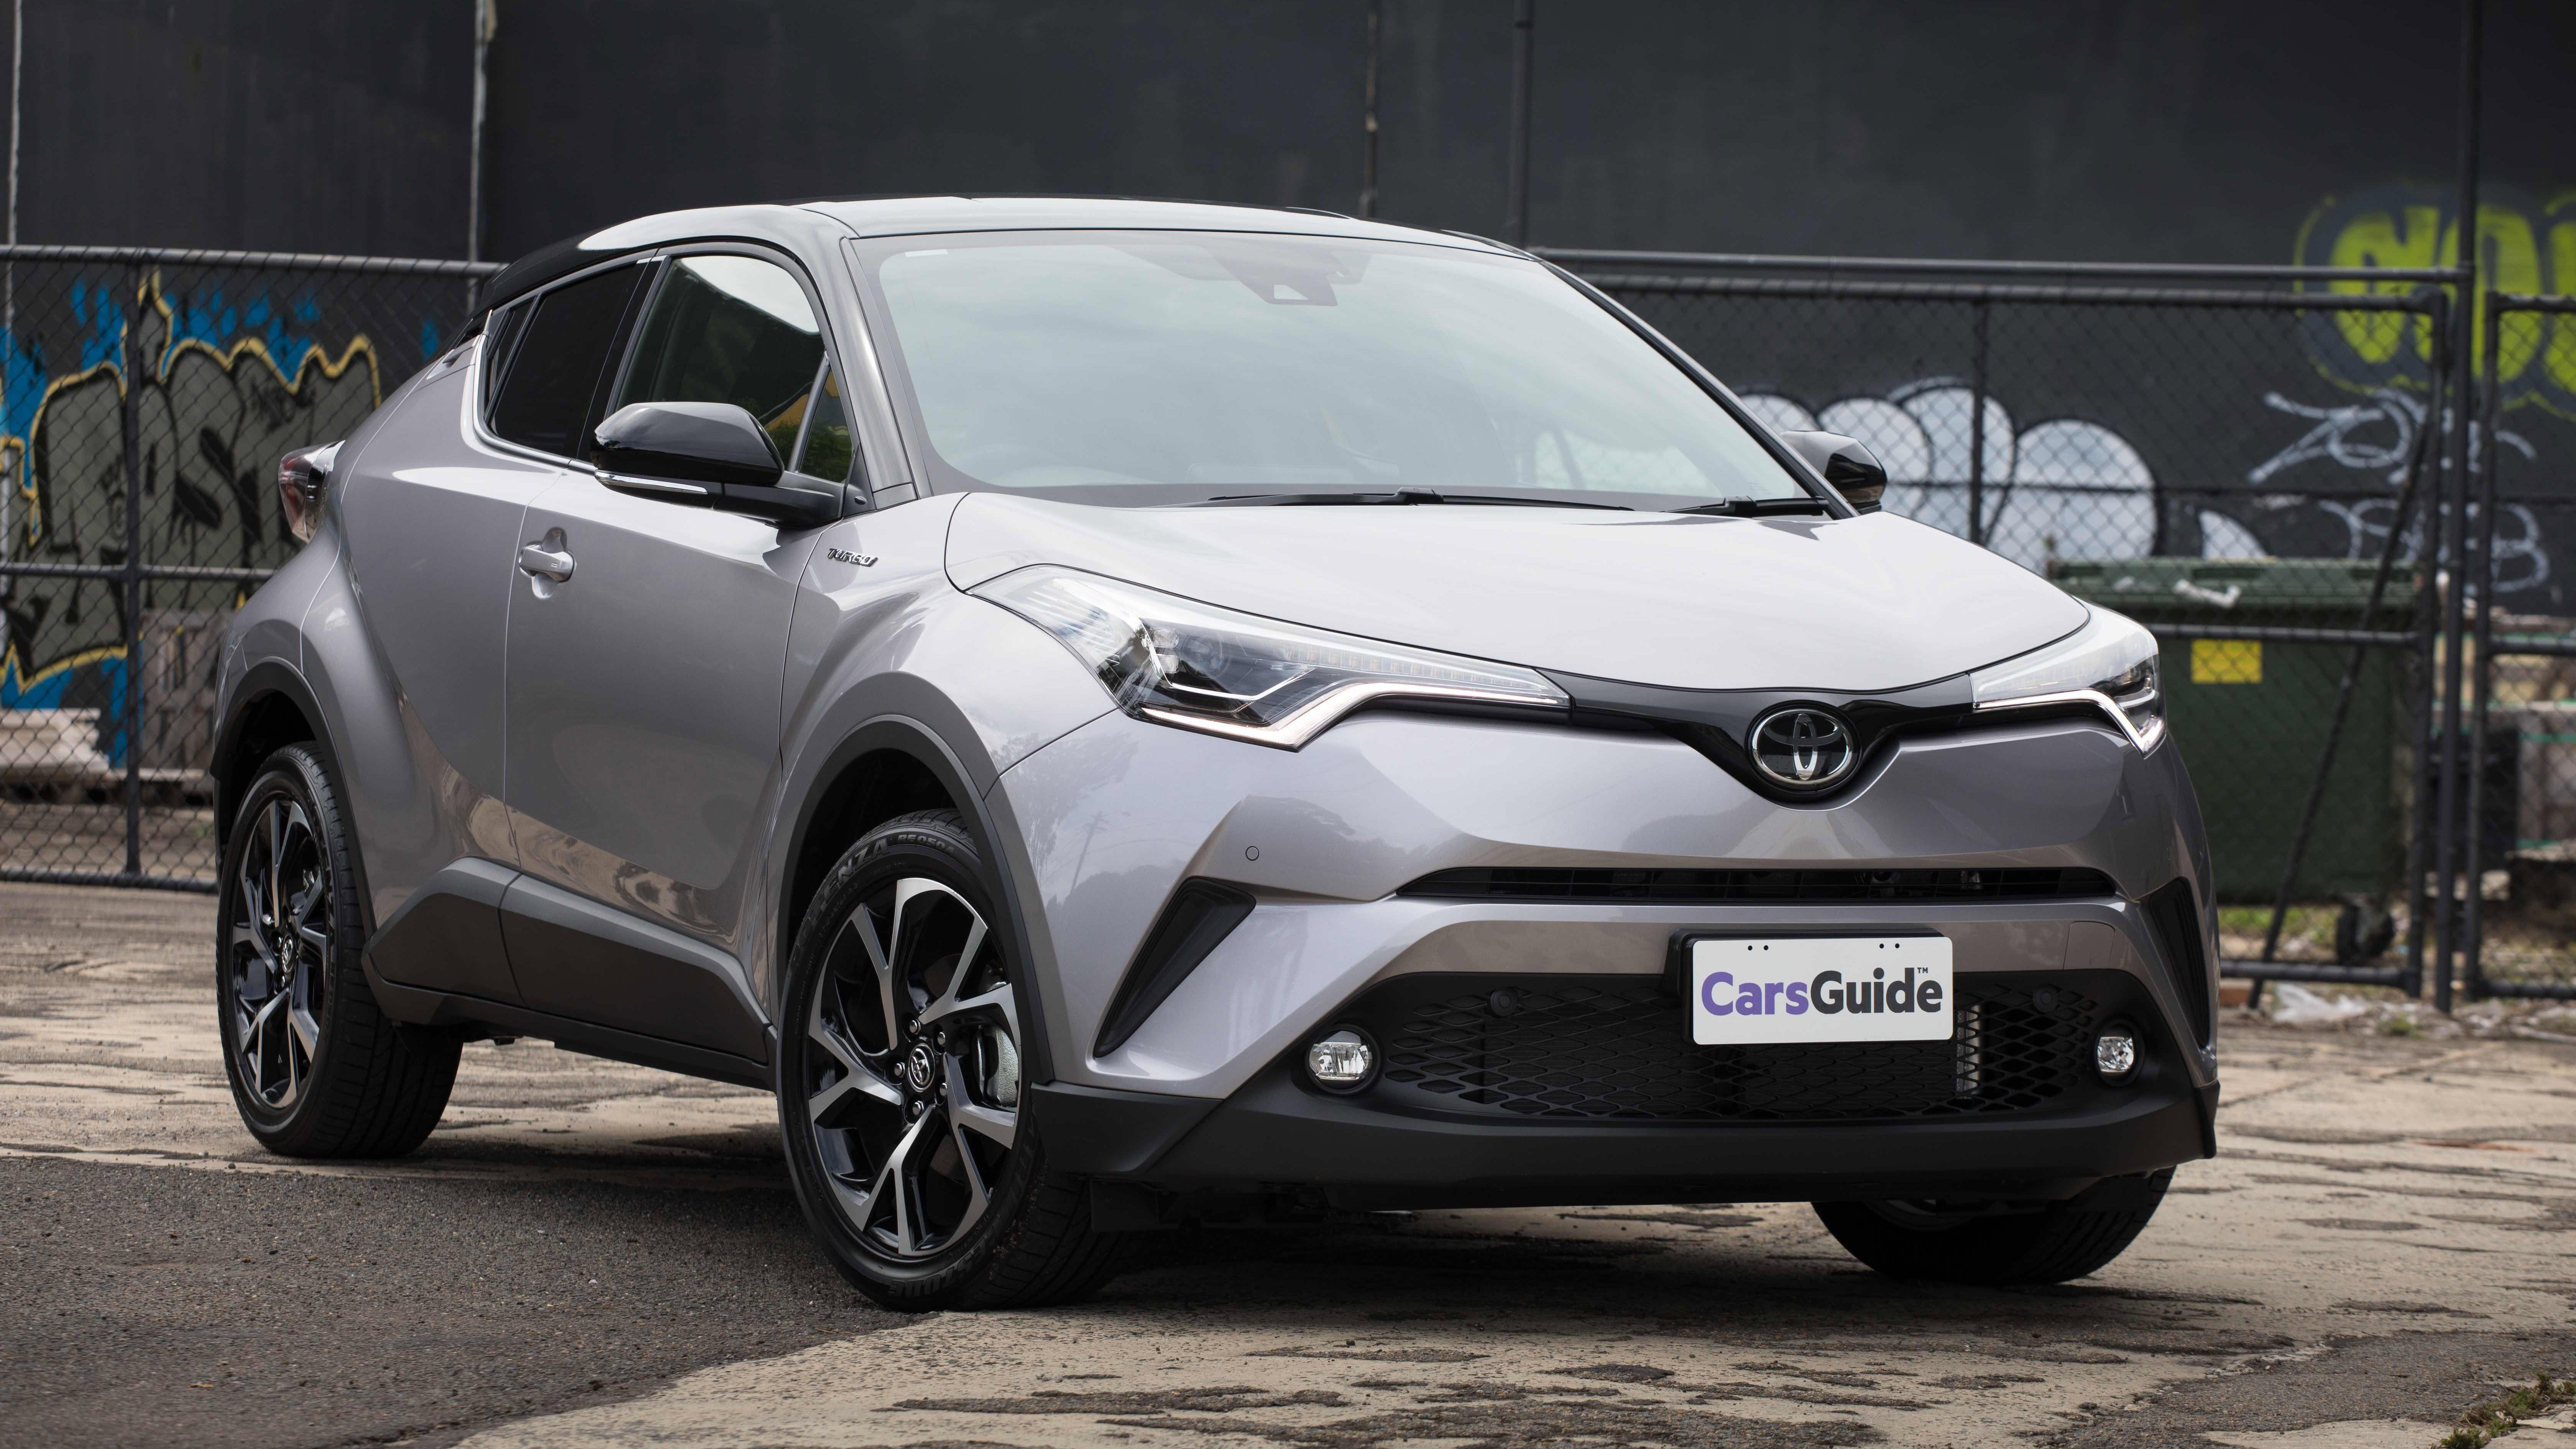 Nissan Qashqai ST 2018 review: snapshot | CarsGuide